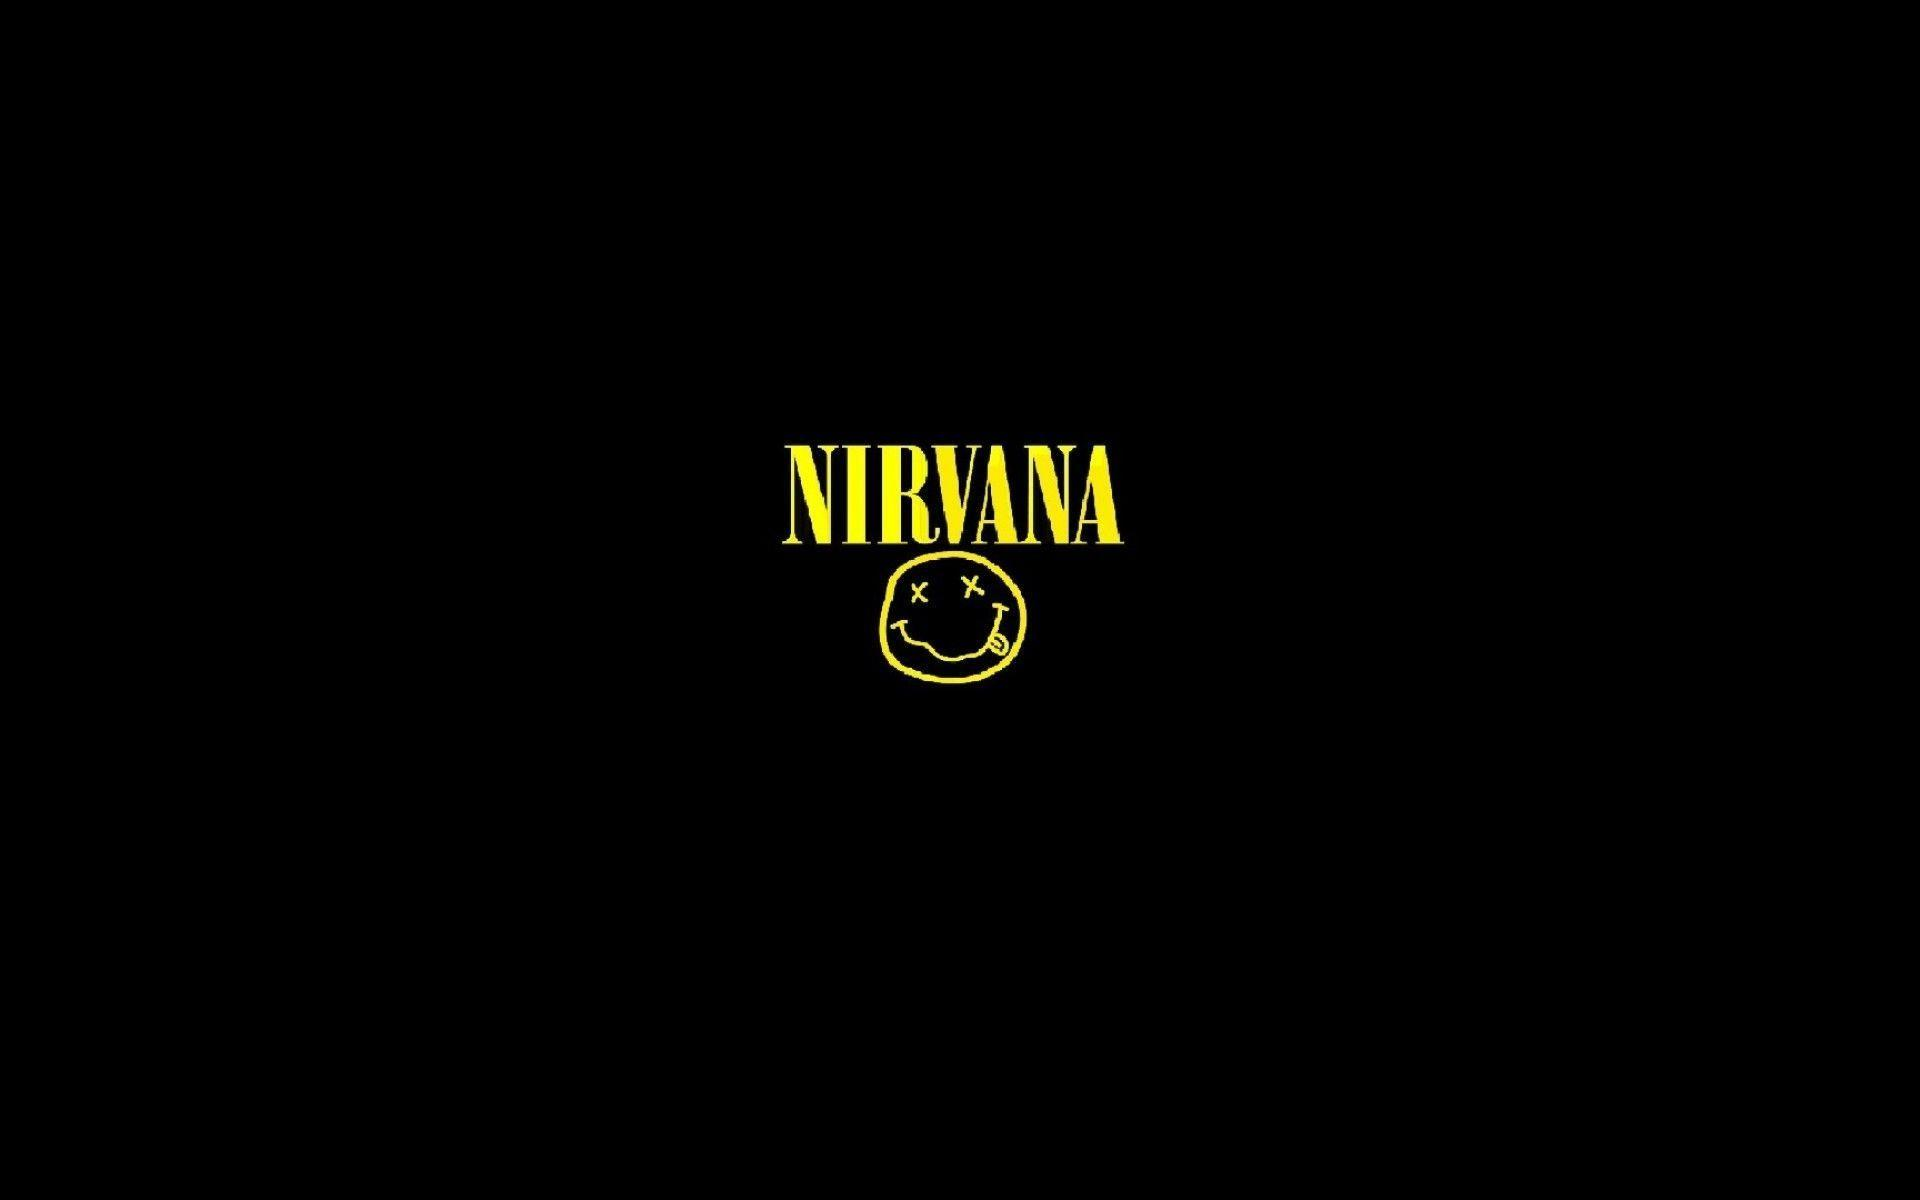 nirvana wallpapers smiley - wallpaper cave